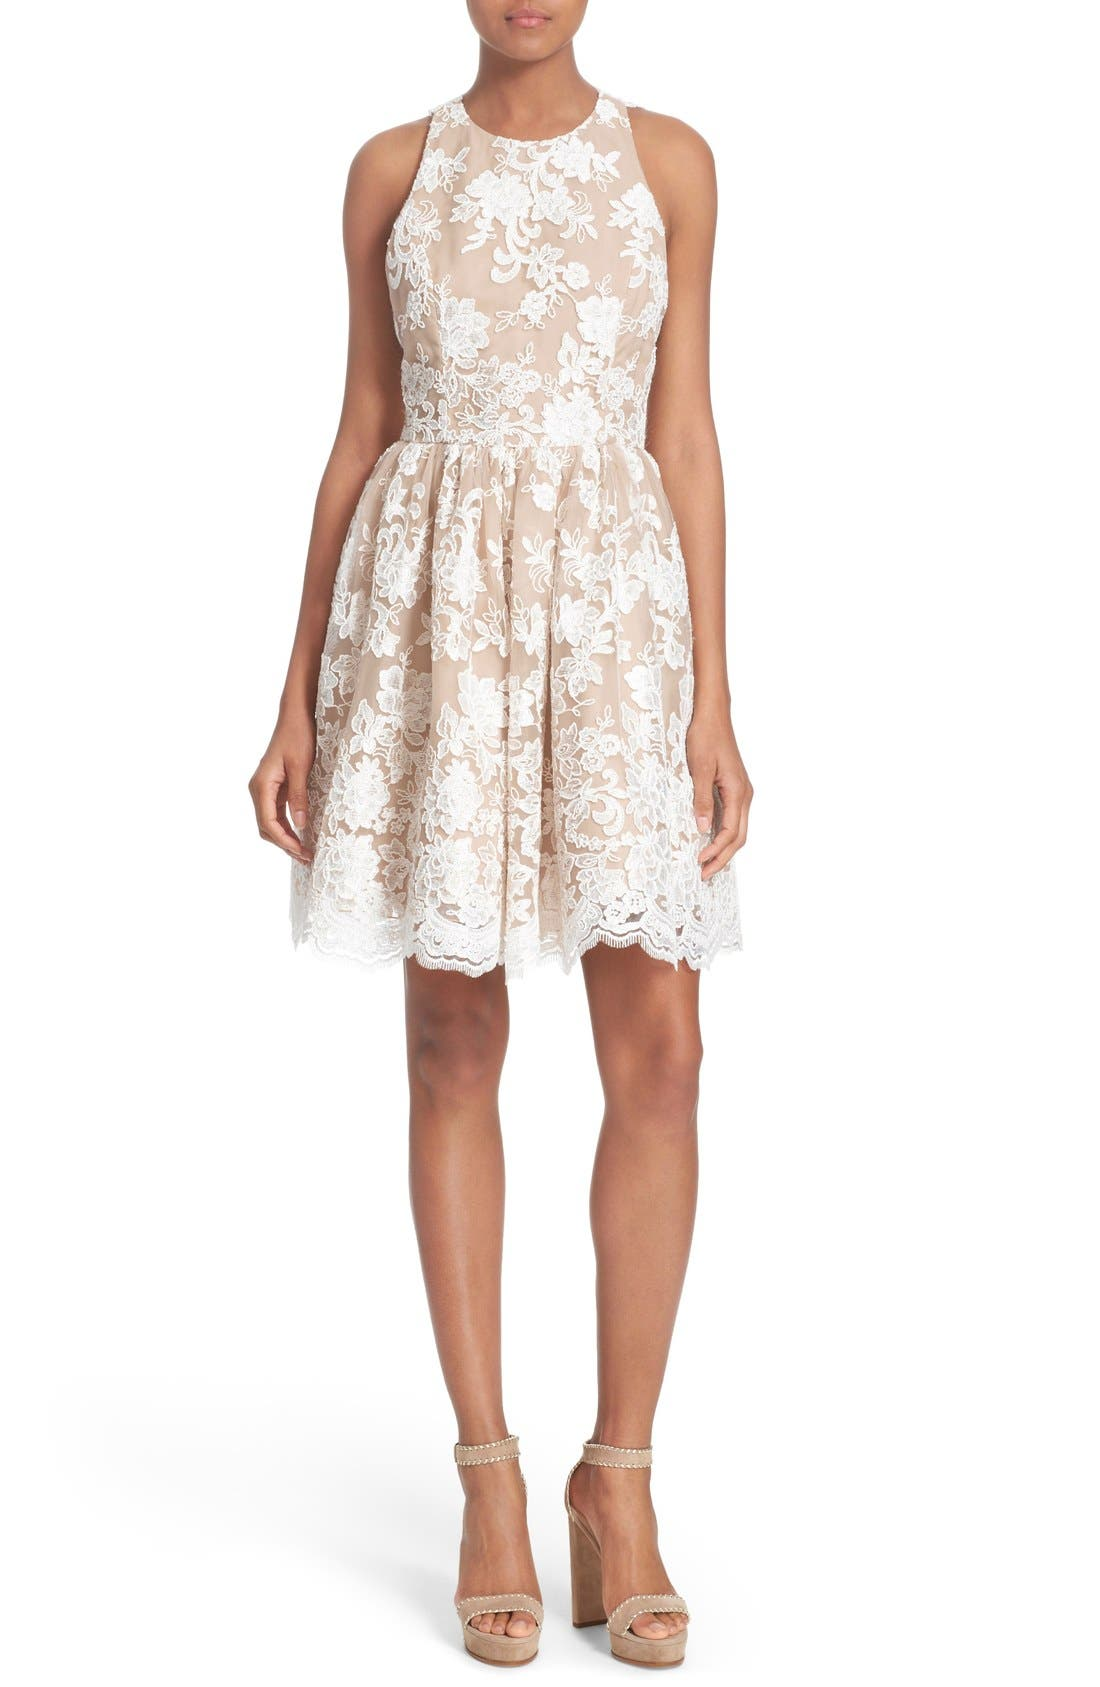 Alternate Image 1 Selected - Alice + Olivia 'Ladonna' Lace Fit & Flare Dress